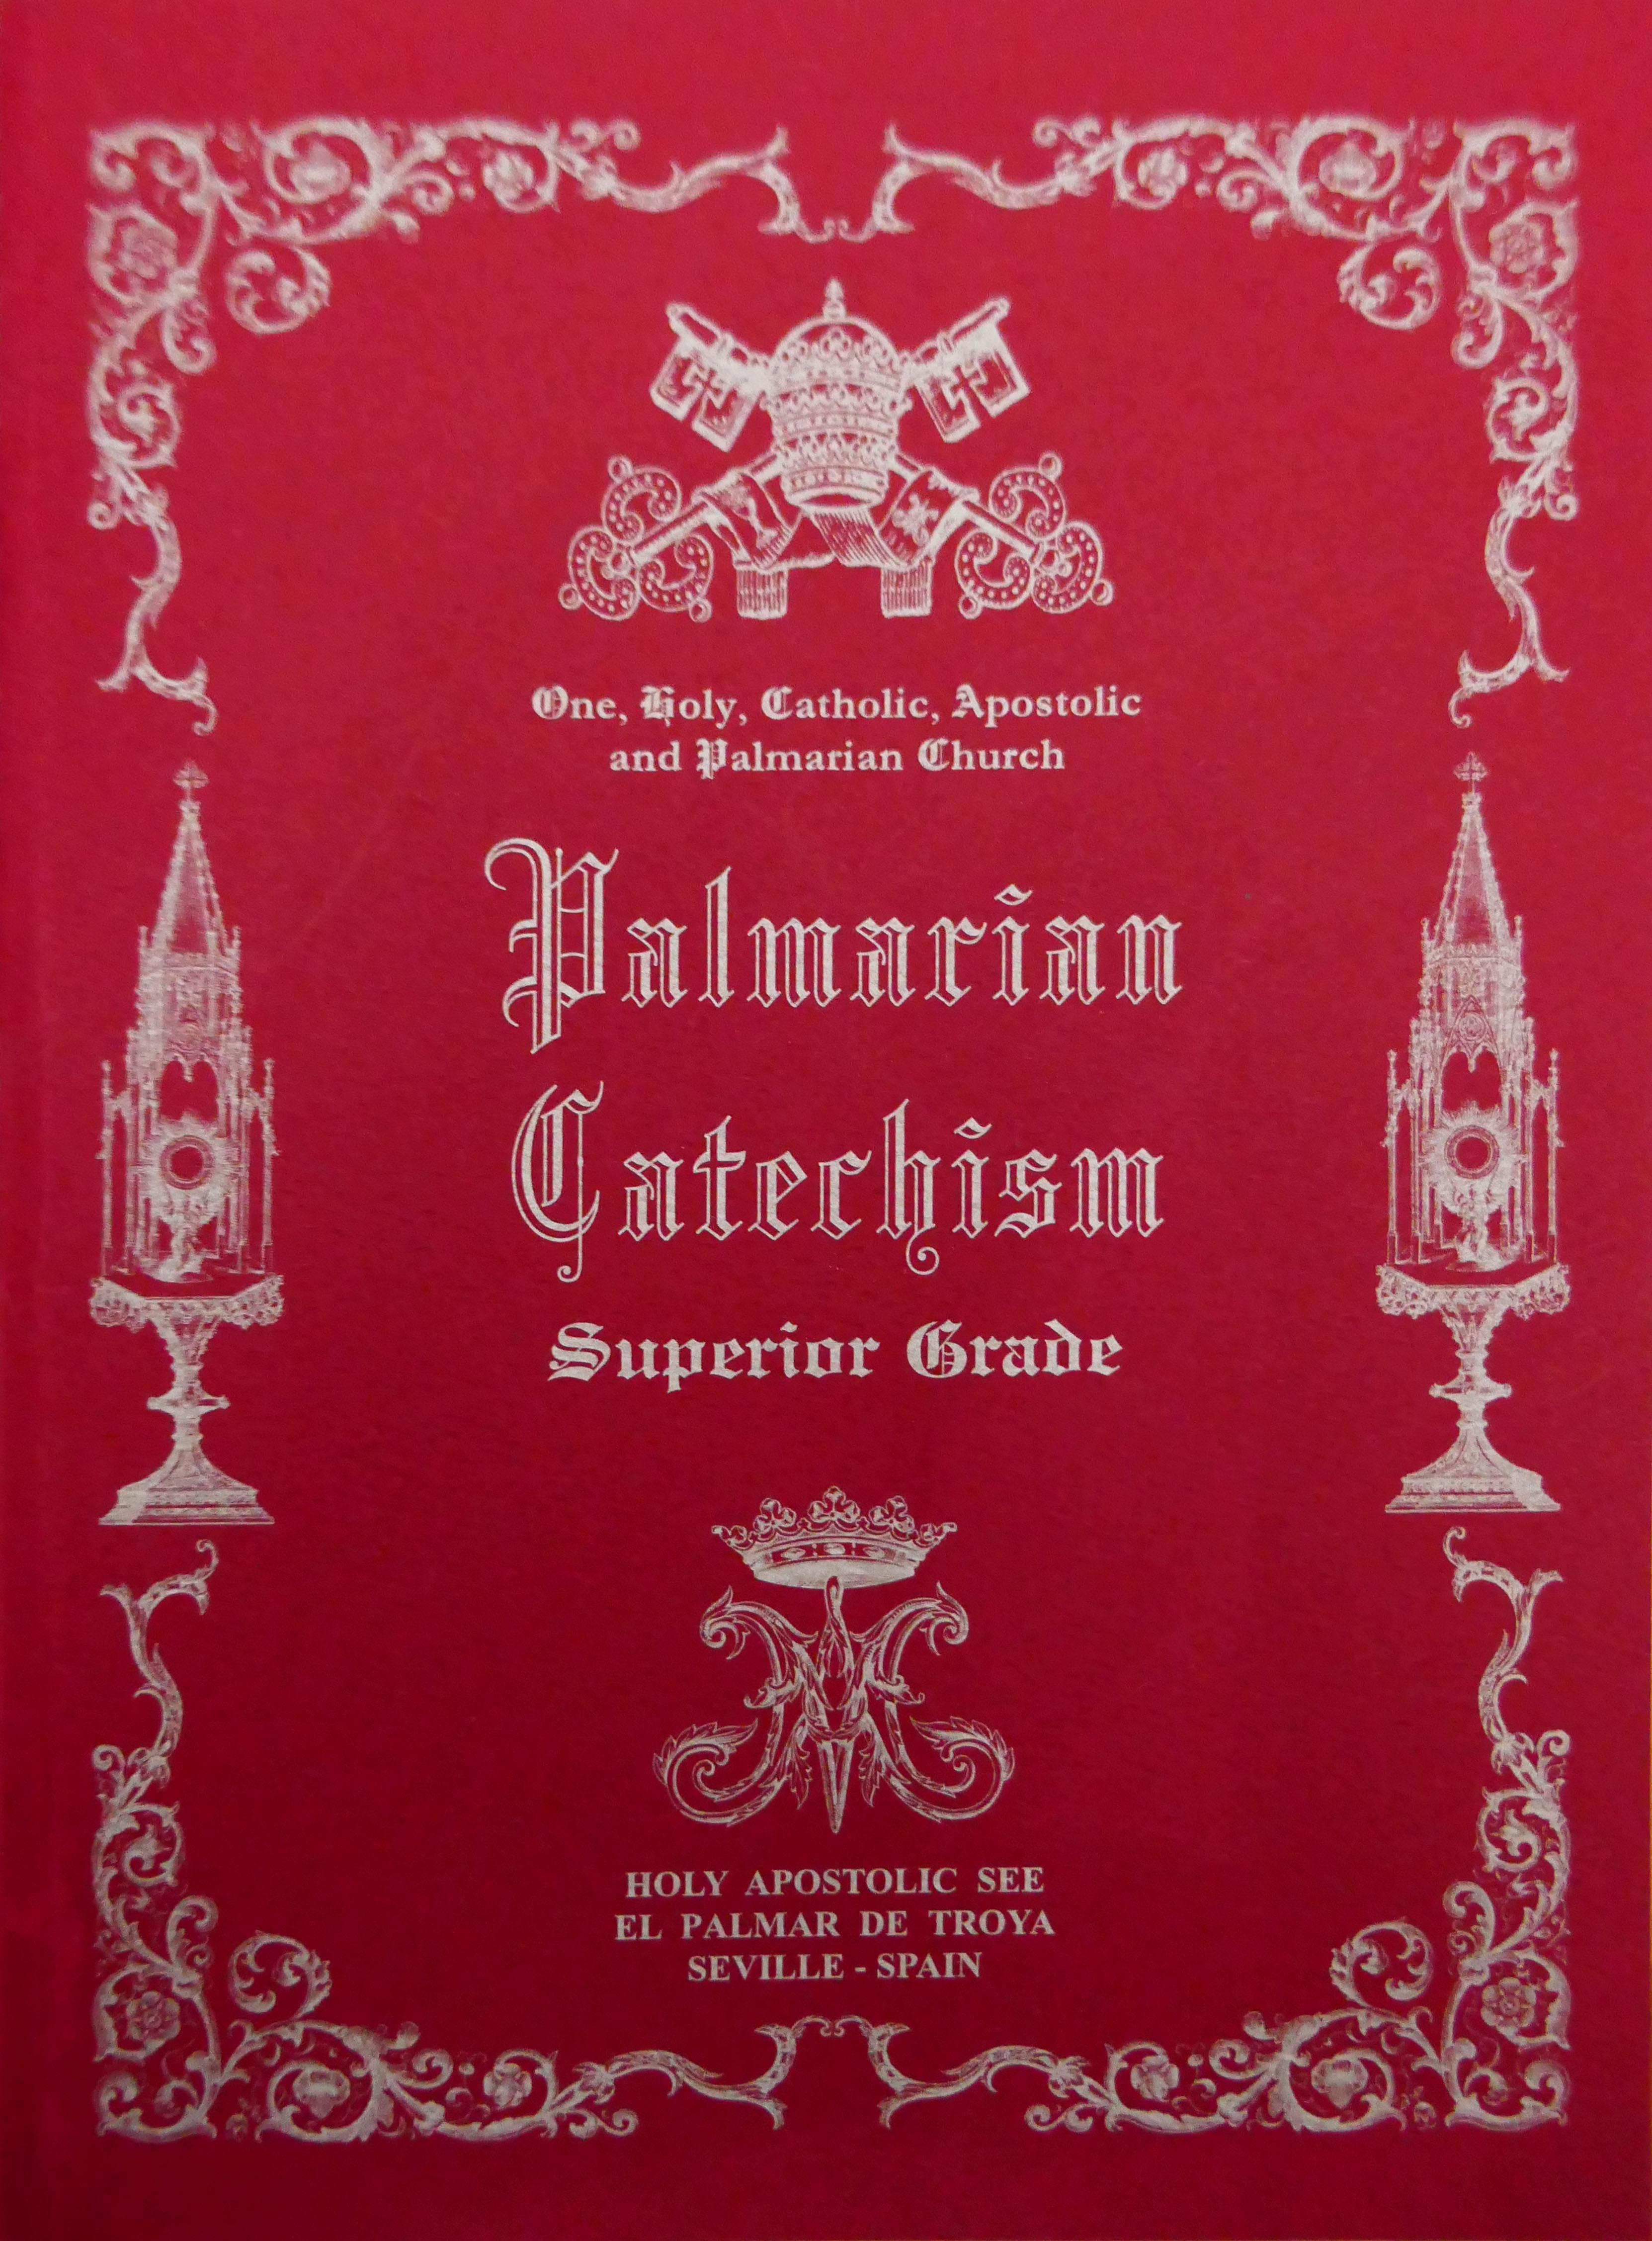 "<a href=""https://www.palmarianchurch.org/wp-content/uploads/2019/03/Extracts-from-the-Palmarian-Catechism.pdf"" title=""Extracts from the Palmarian Catechism"">Extracts from the Palmarian Catechism  <br> <br>Zobacz więcej</a>"